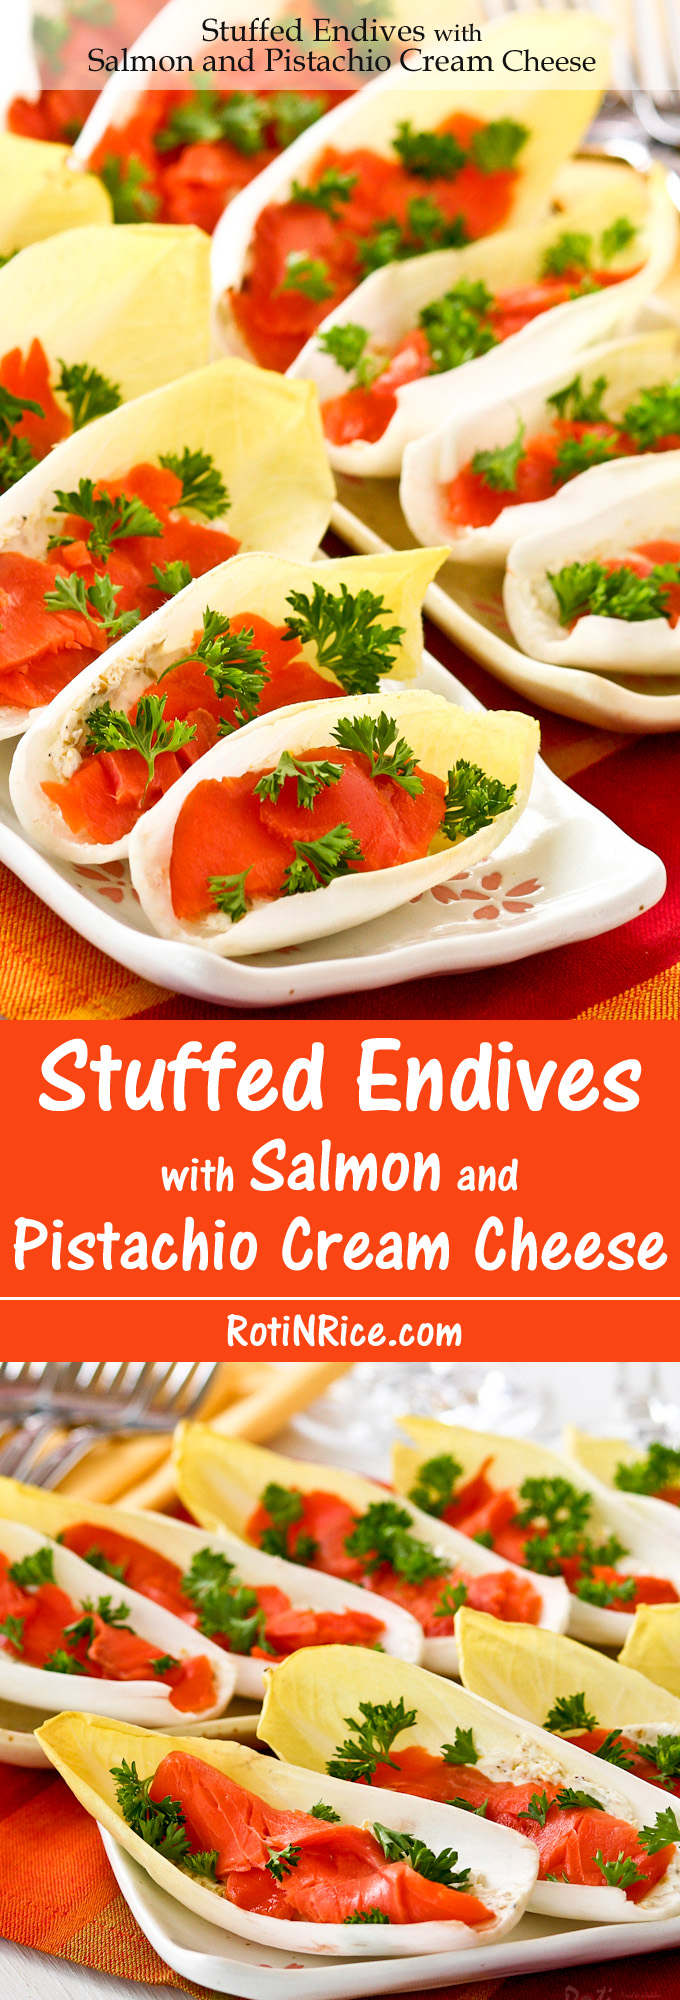 These Stuffed Endives with Salmon and Pistachio Cream Cheese are an easy, attractive, and tasty appetizer to put together when there is company. | Food to gladden the heart at RotiNRice.com